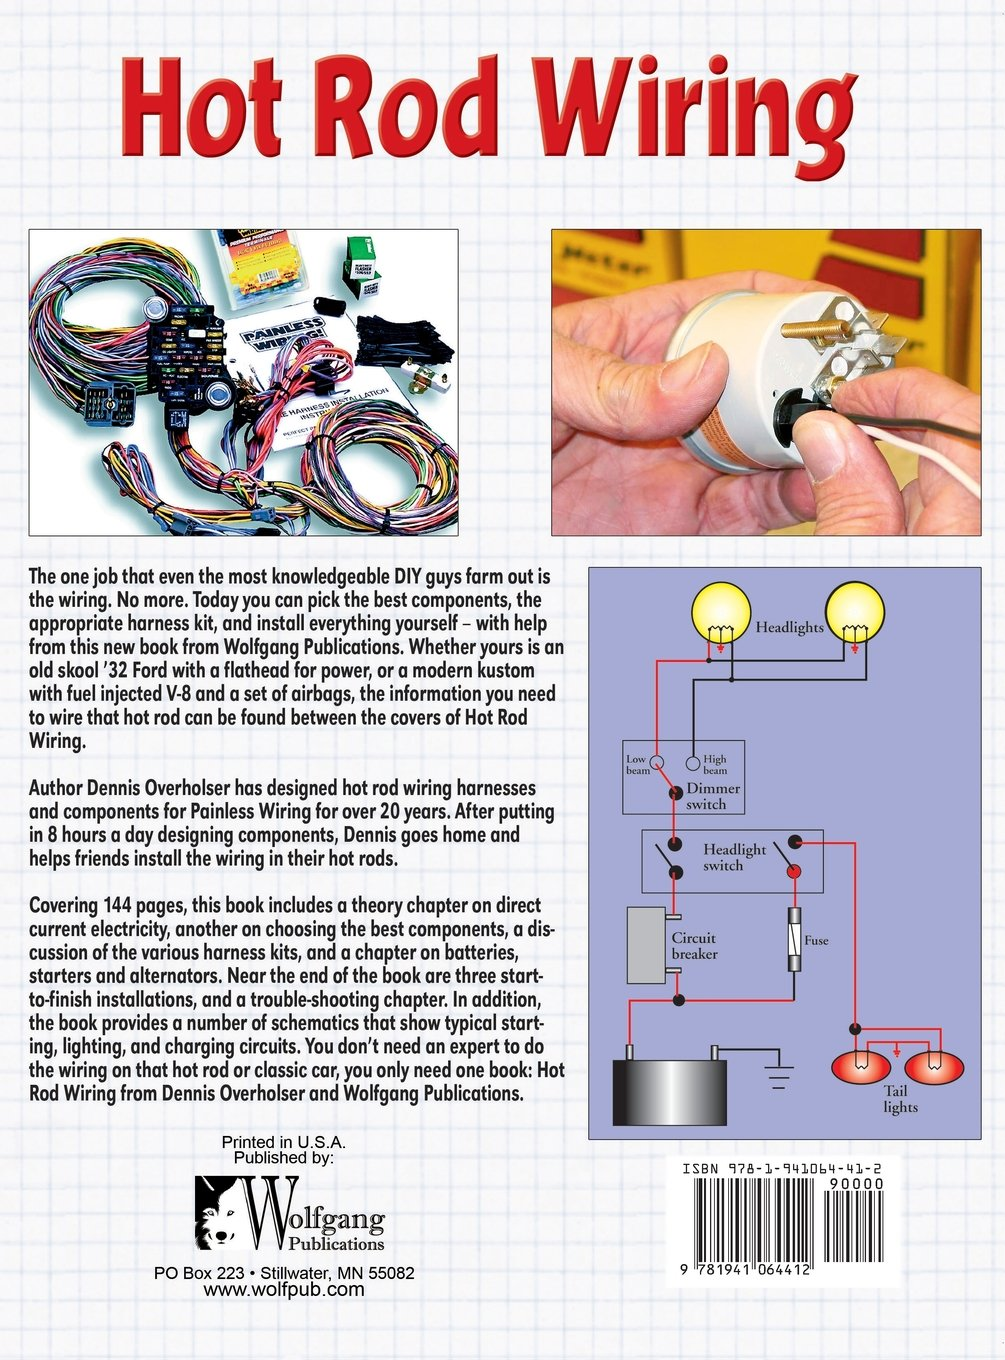 Hot Rod Wiring: A Detailed How-To Guide: Dennis Overholser ... Rat Rod Headlight Wire Harness on